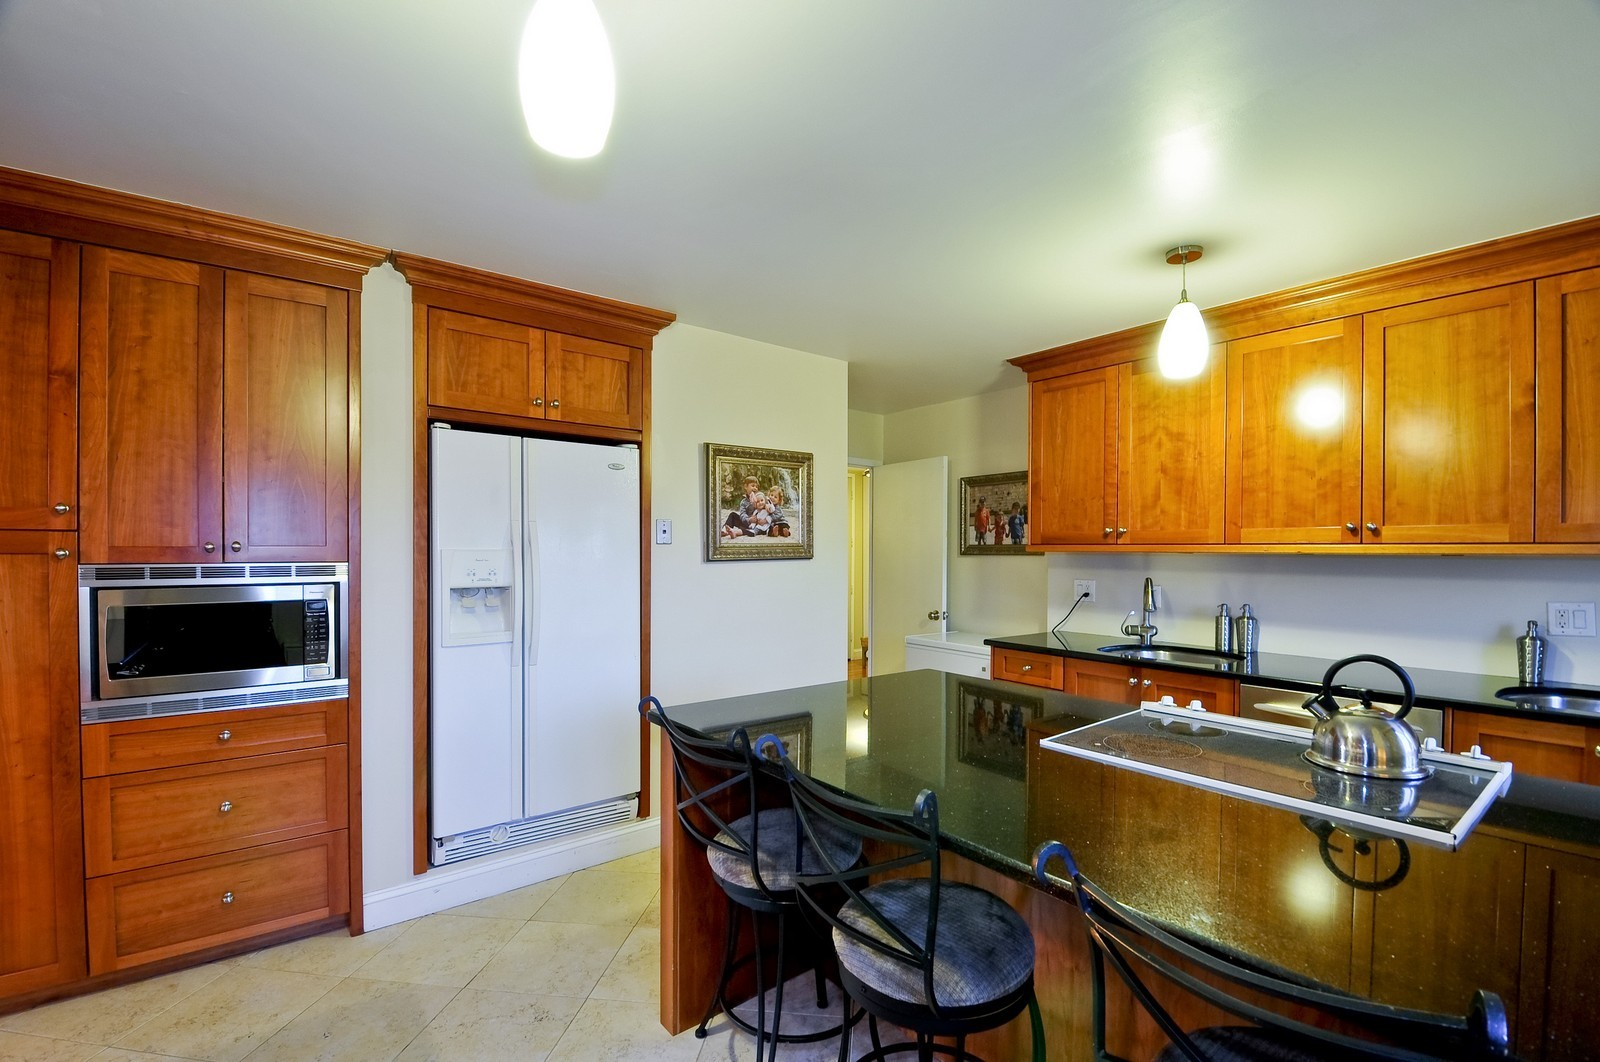 Real Estate Photography - 7033 N Kedzie Ave, Unit 701, Chicago, IL, 60645 - Location 1